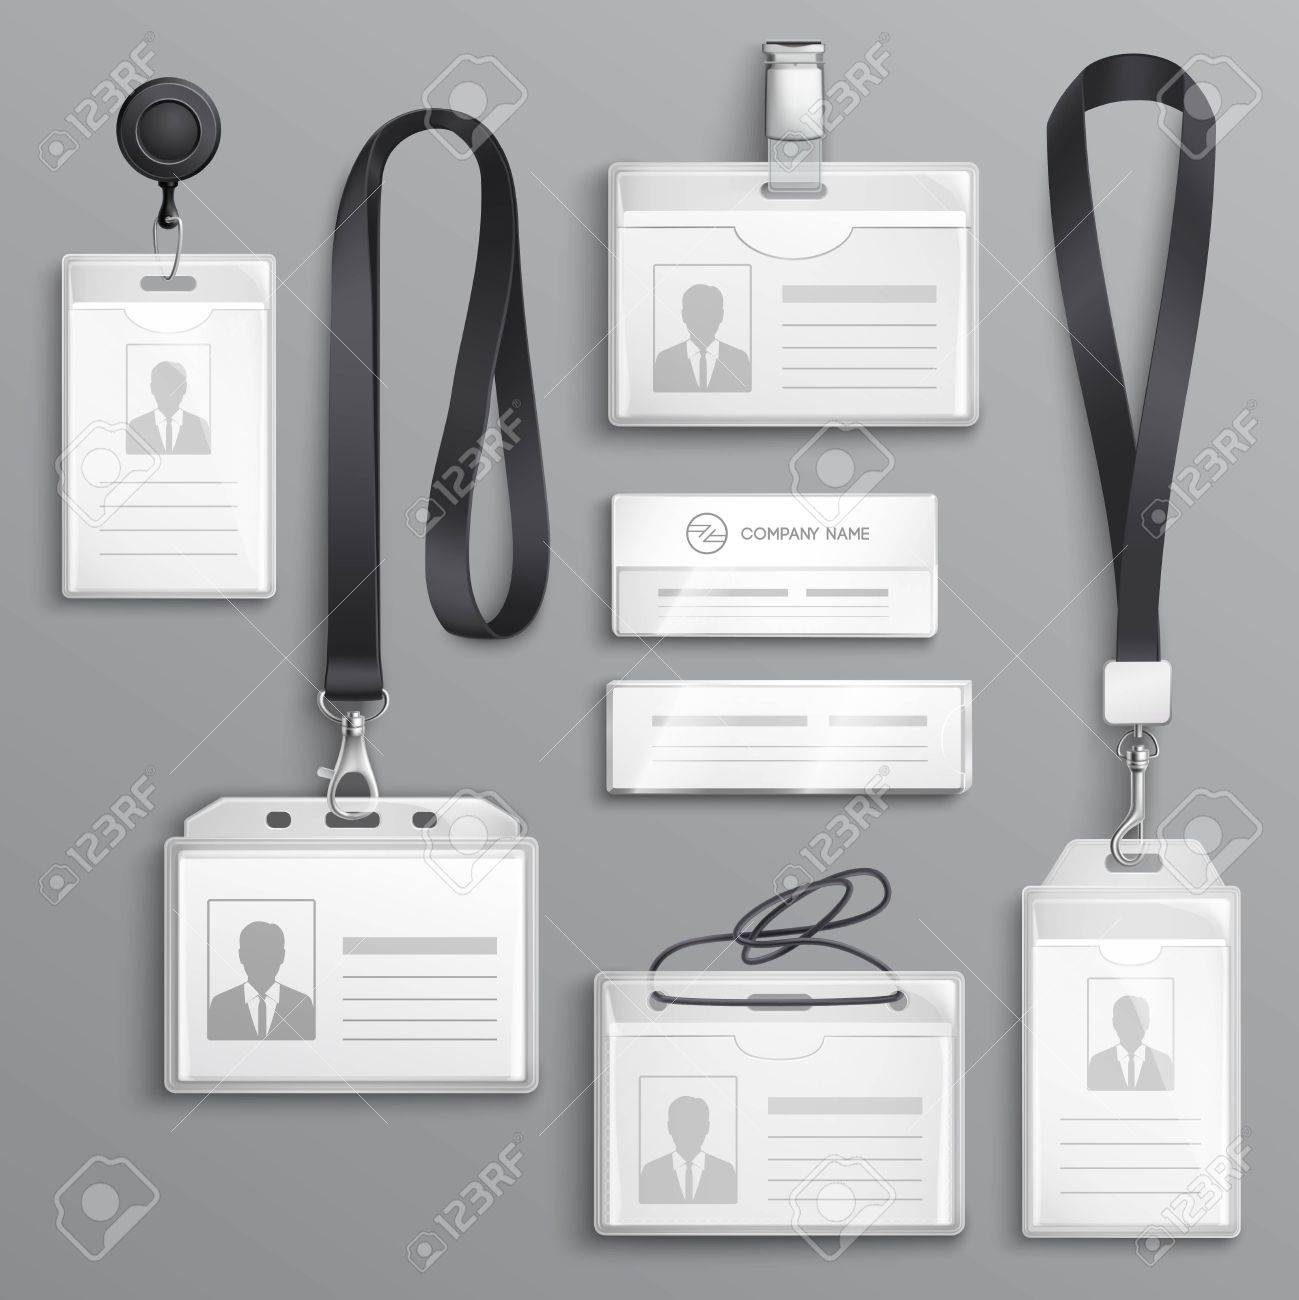 Employees identification card id badges holders with lanyards cord and strap clips black realistic samples set vector illustration - 86999493